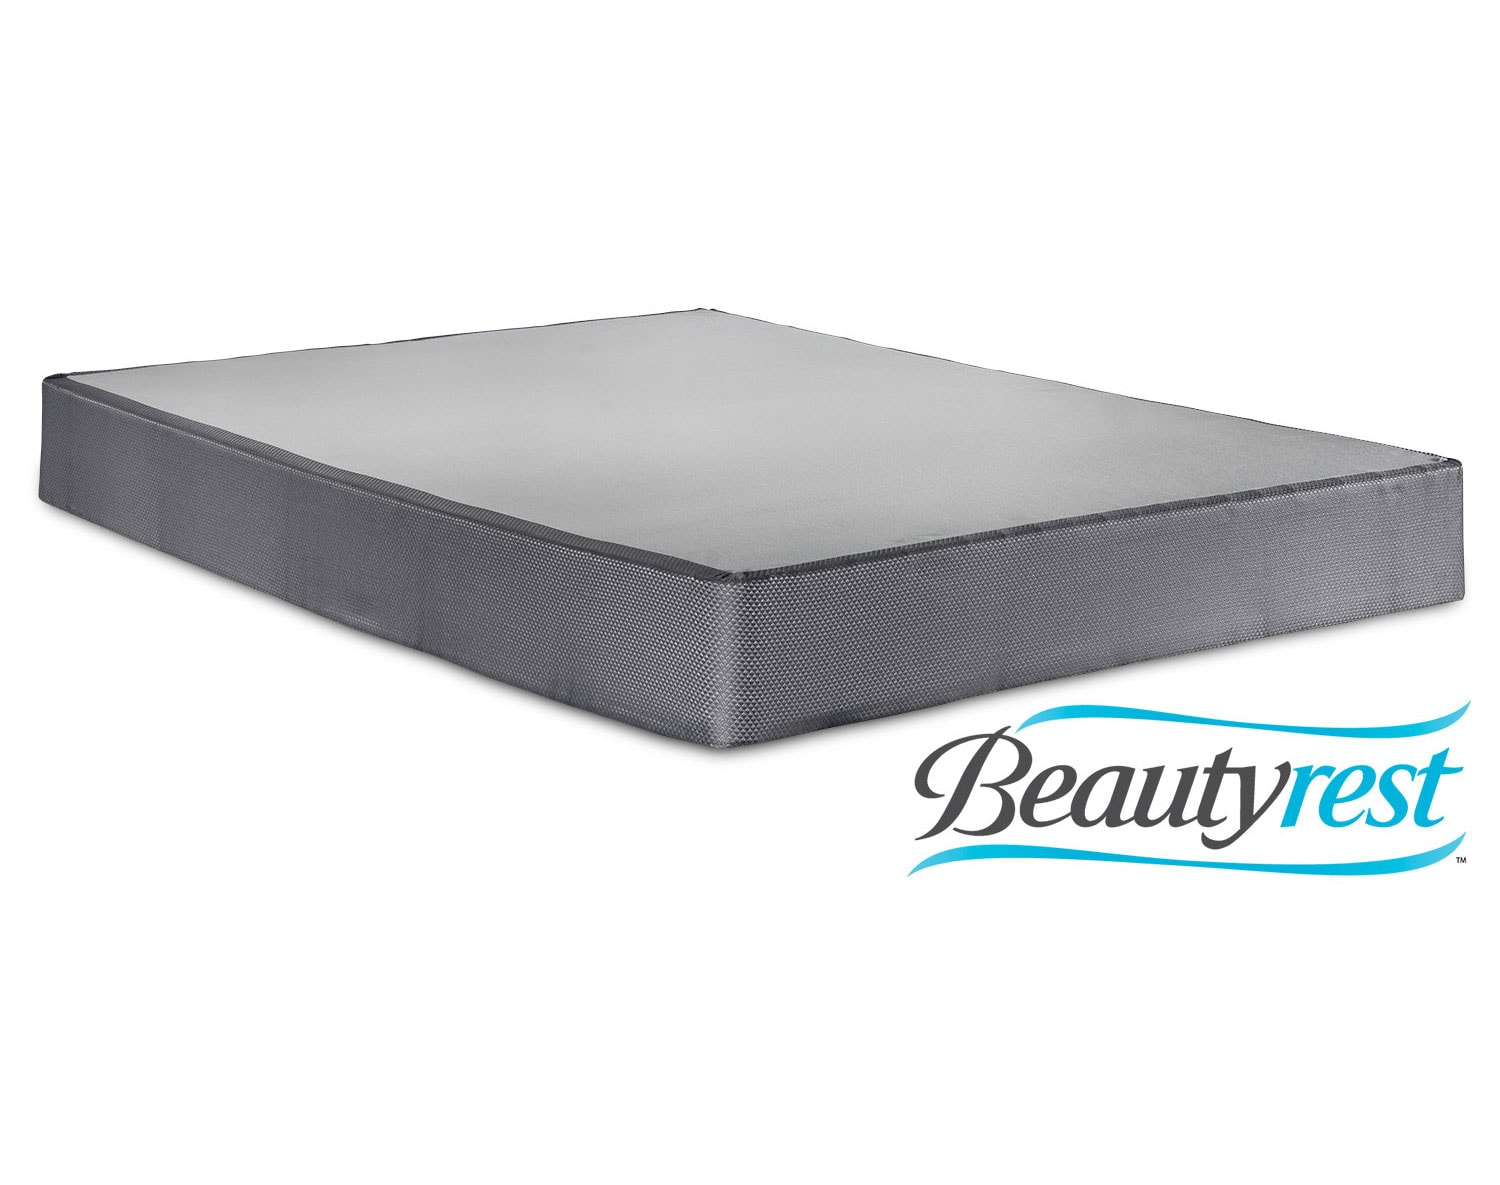 The Simmons Beautyrest Simple Collection